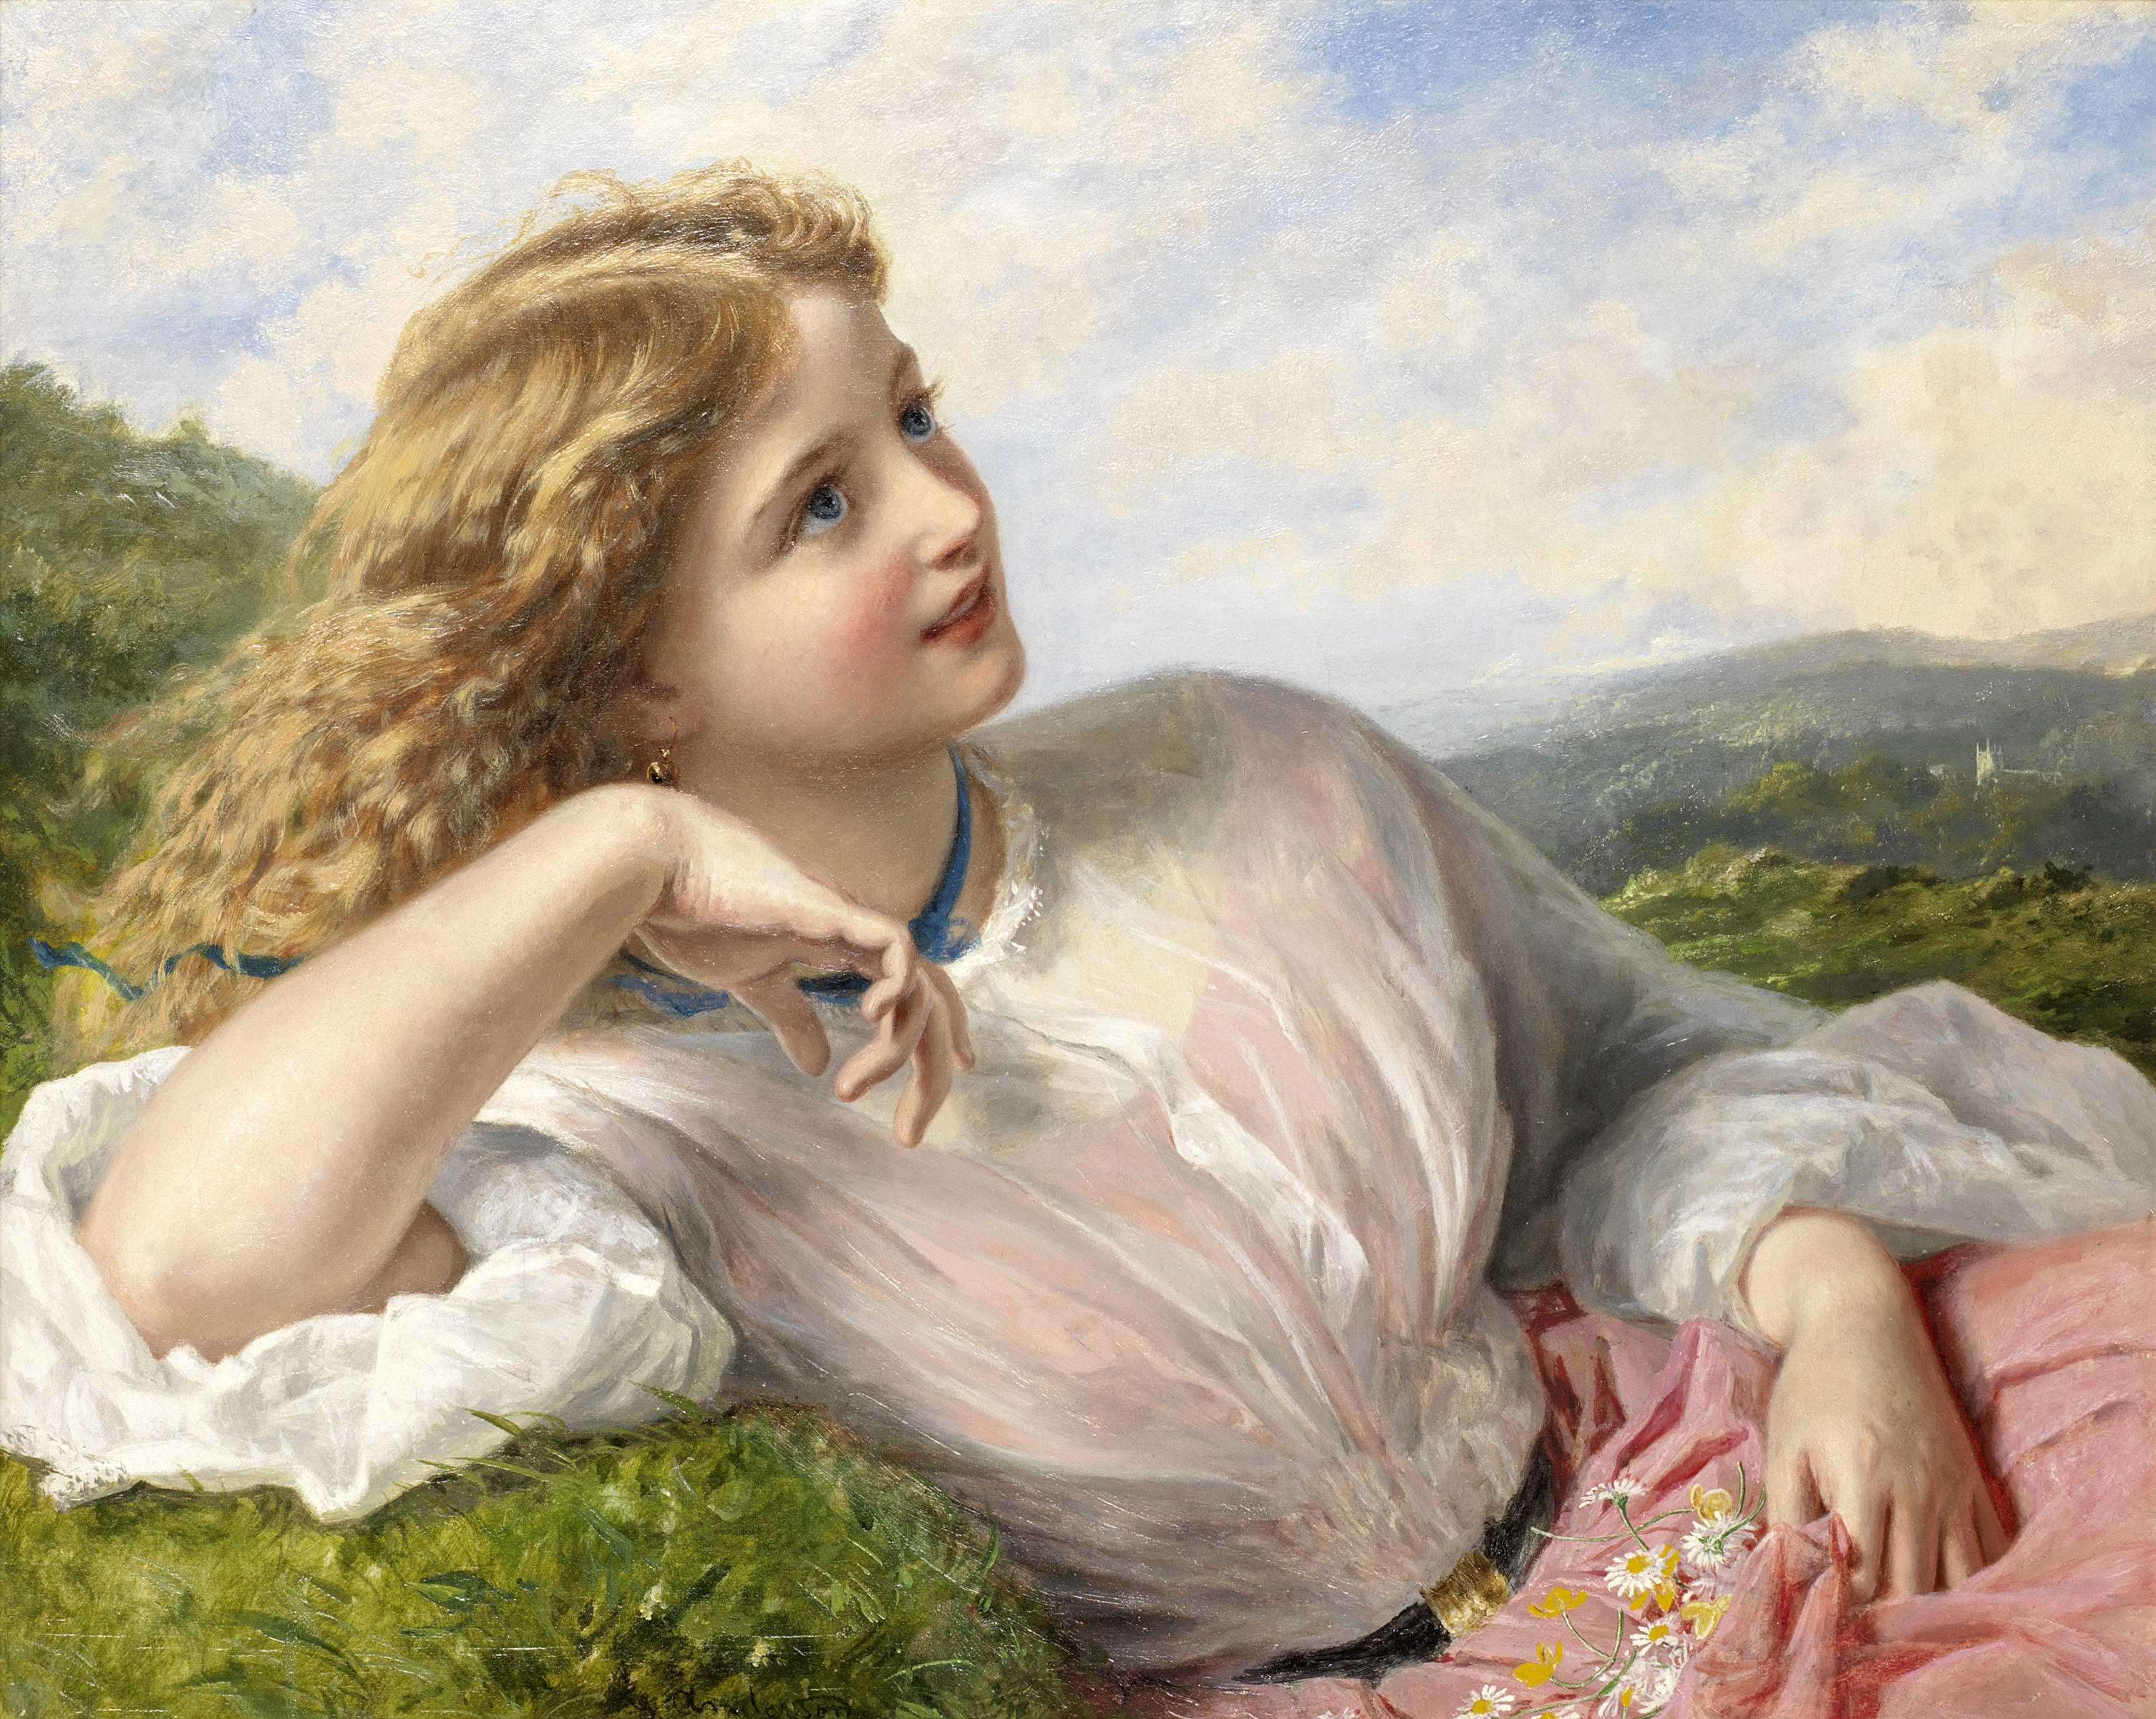 Sophie Gengembre Anderson - Wikipedia, the free encyclopedia